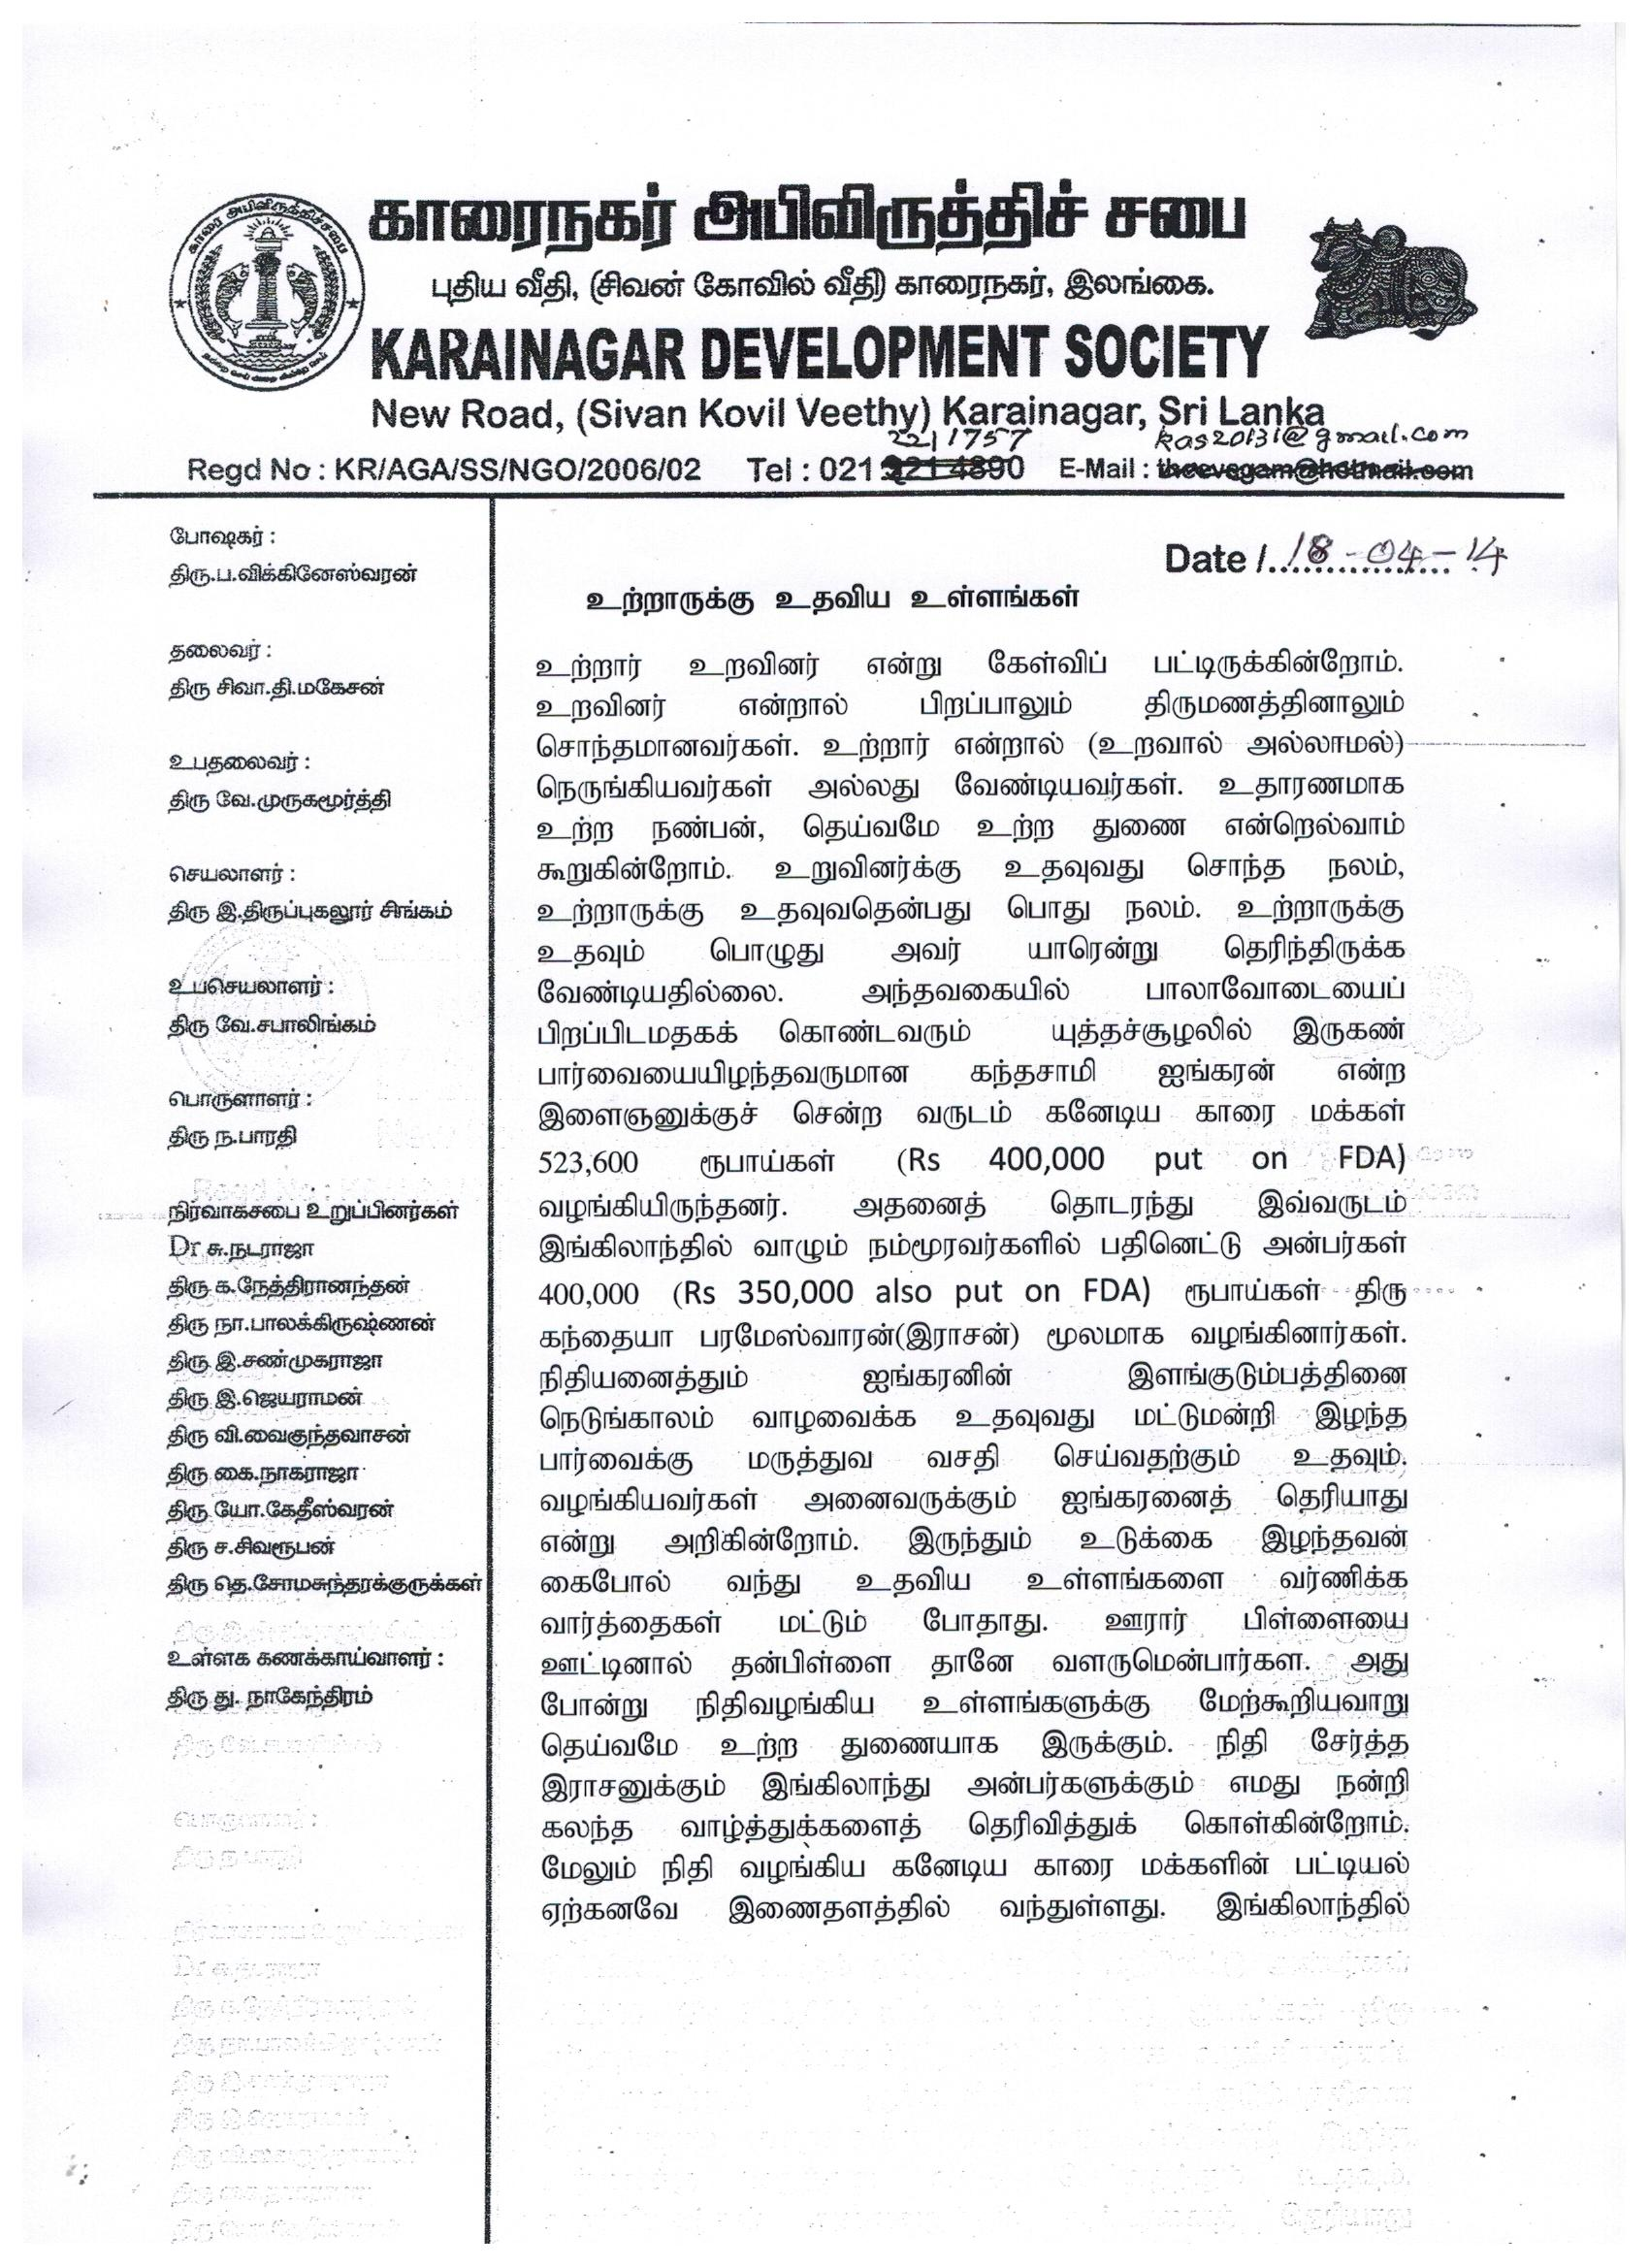 Ainkaran donation letter page 1